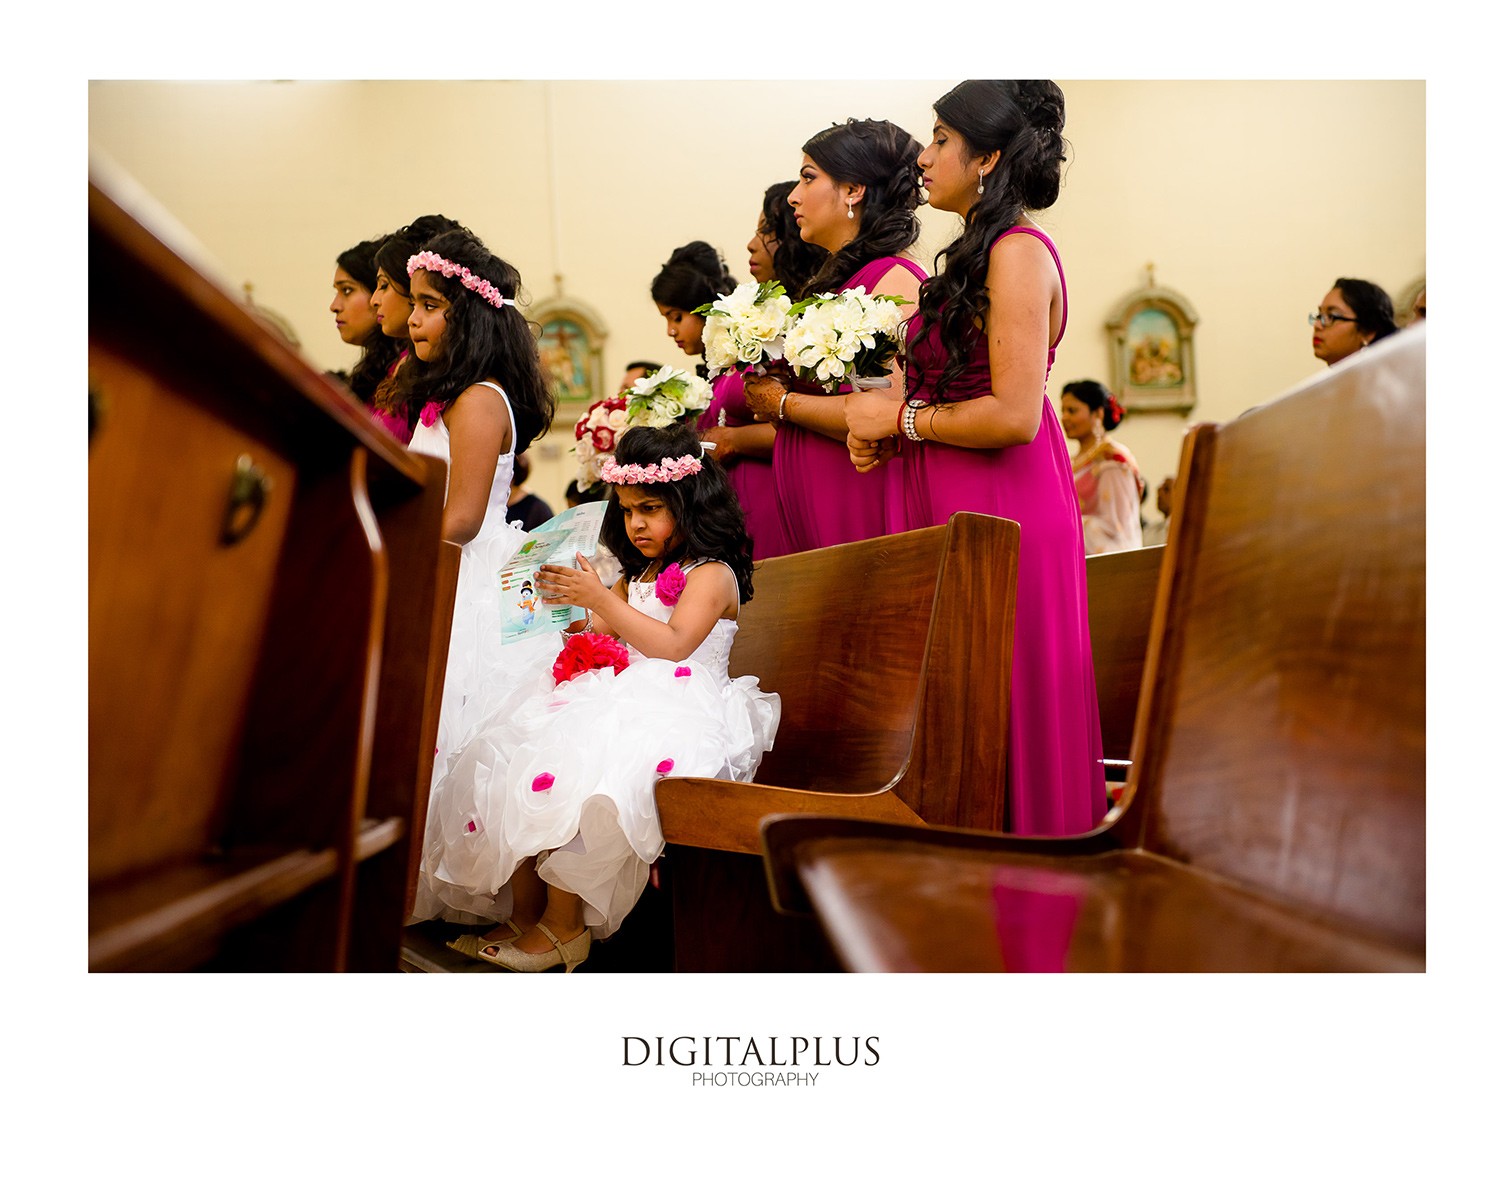 Sharmi&Koki(ChristianWED2015)---TEASER15.jpg